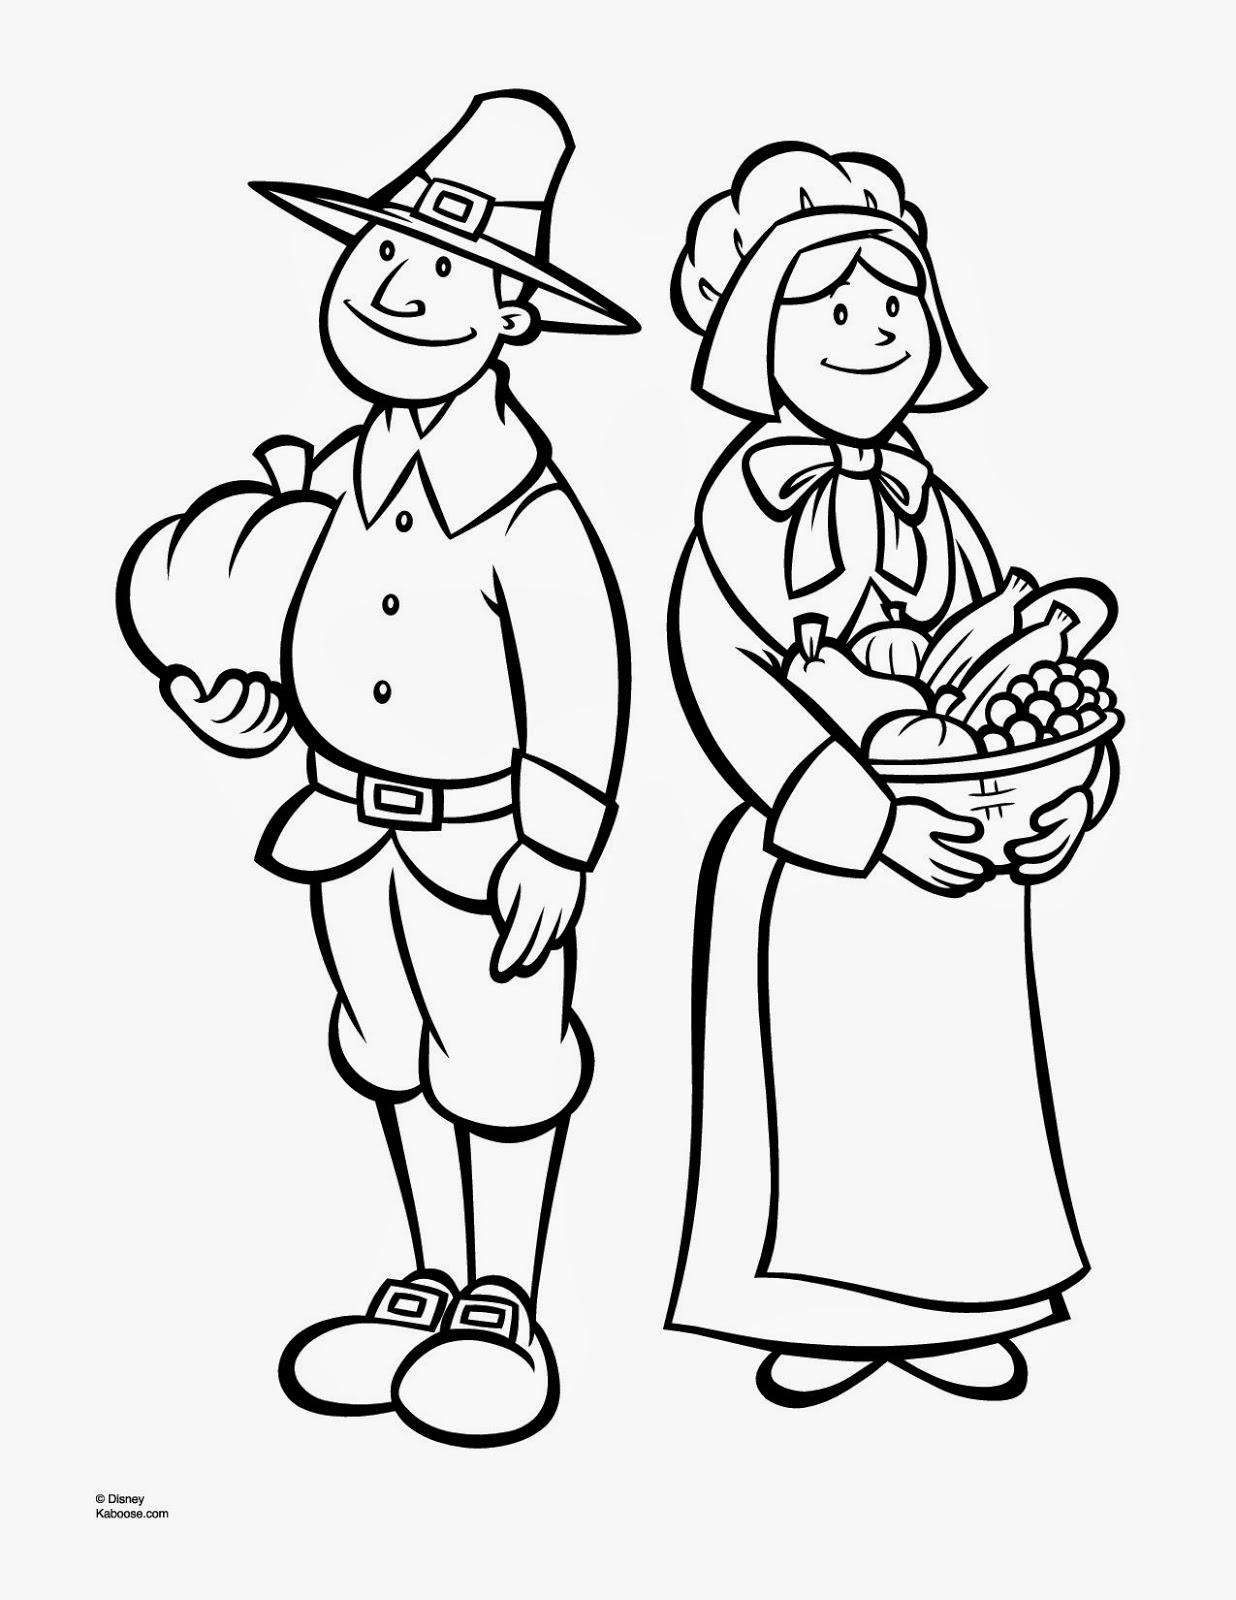 Thanksgiving day printable coloring pages minnesota miranda for Thanksgiving coloring page free